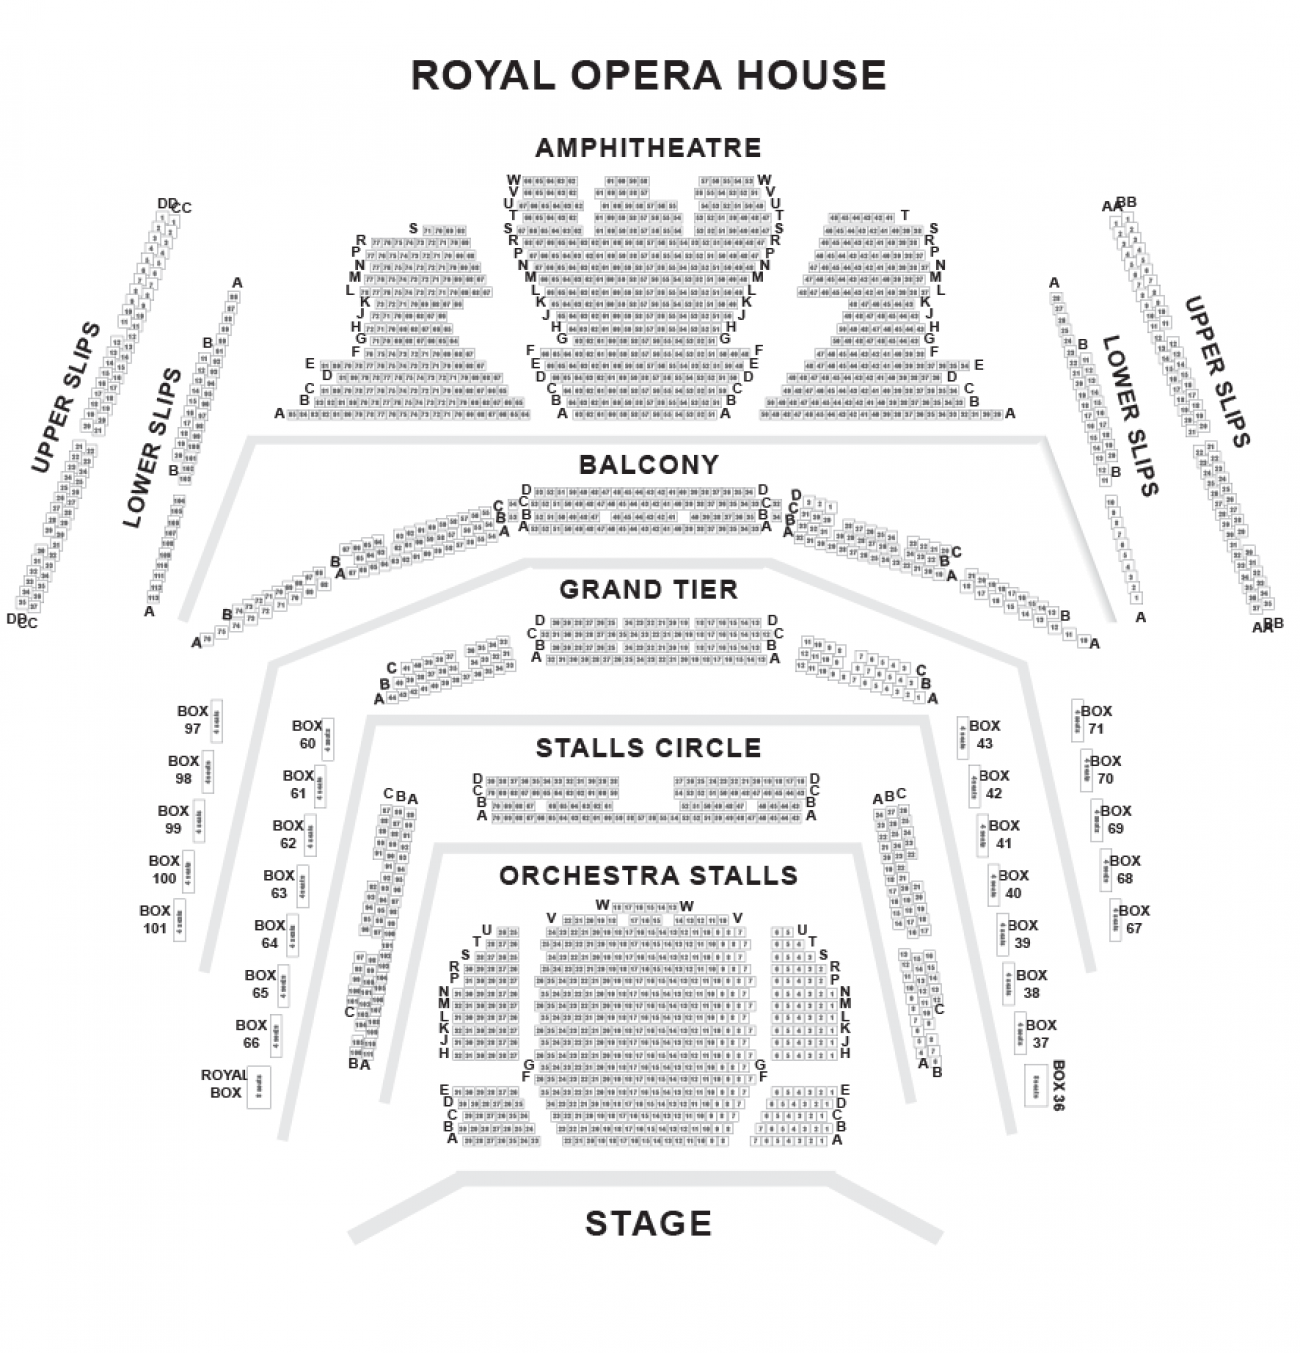 Royal Opera House Seating plan